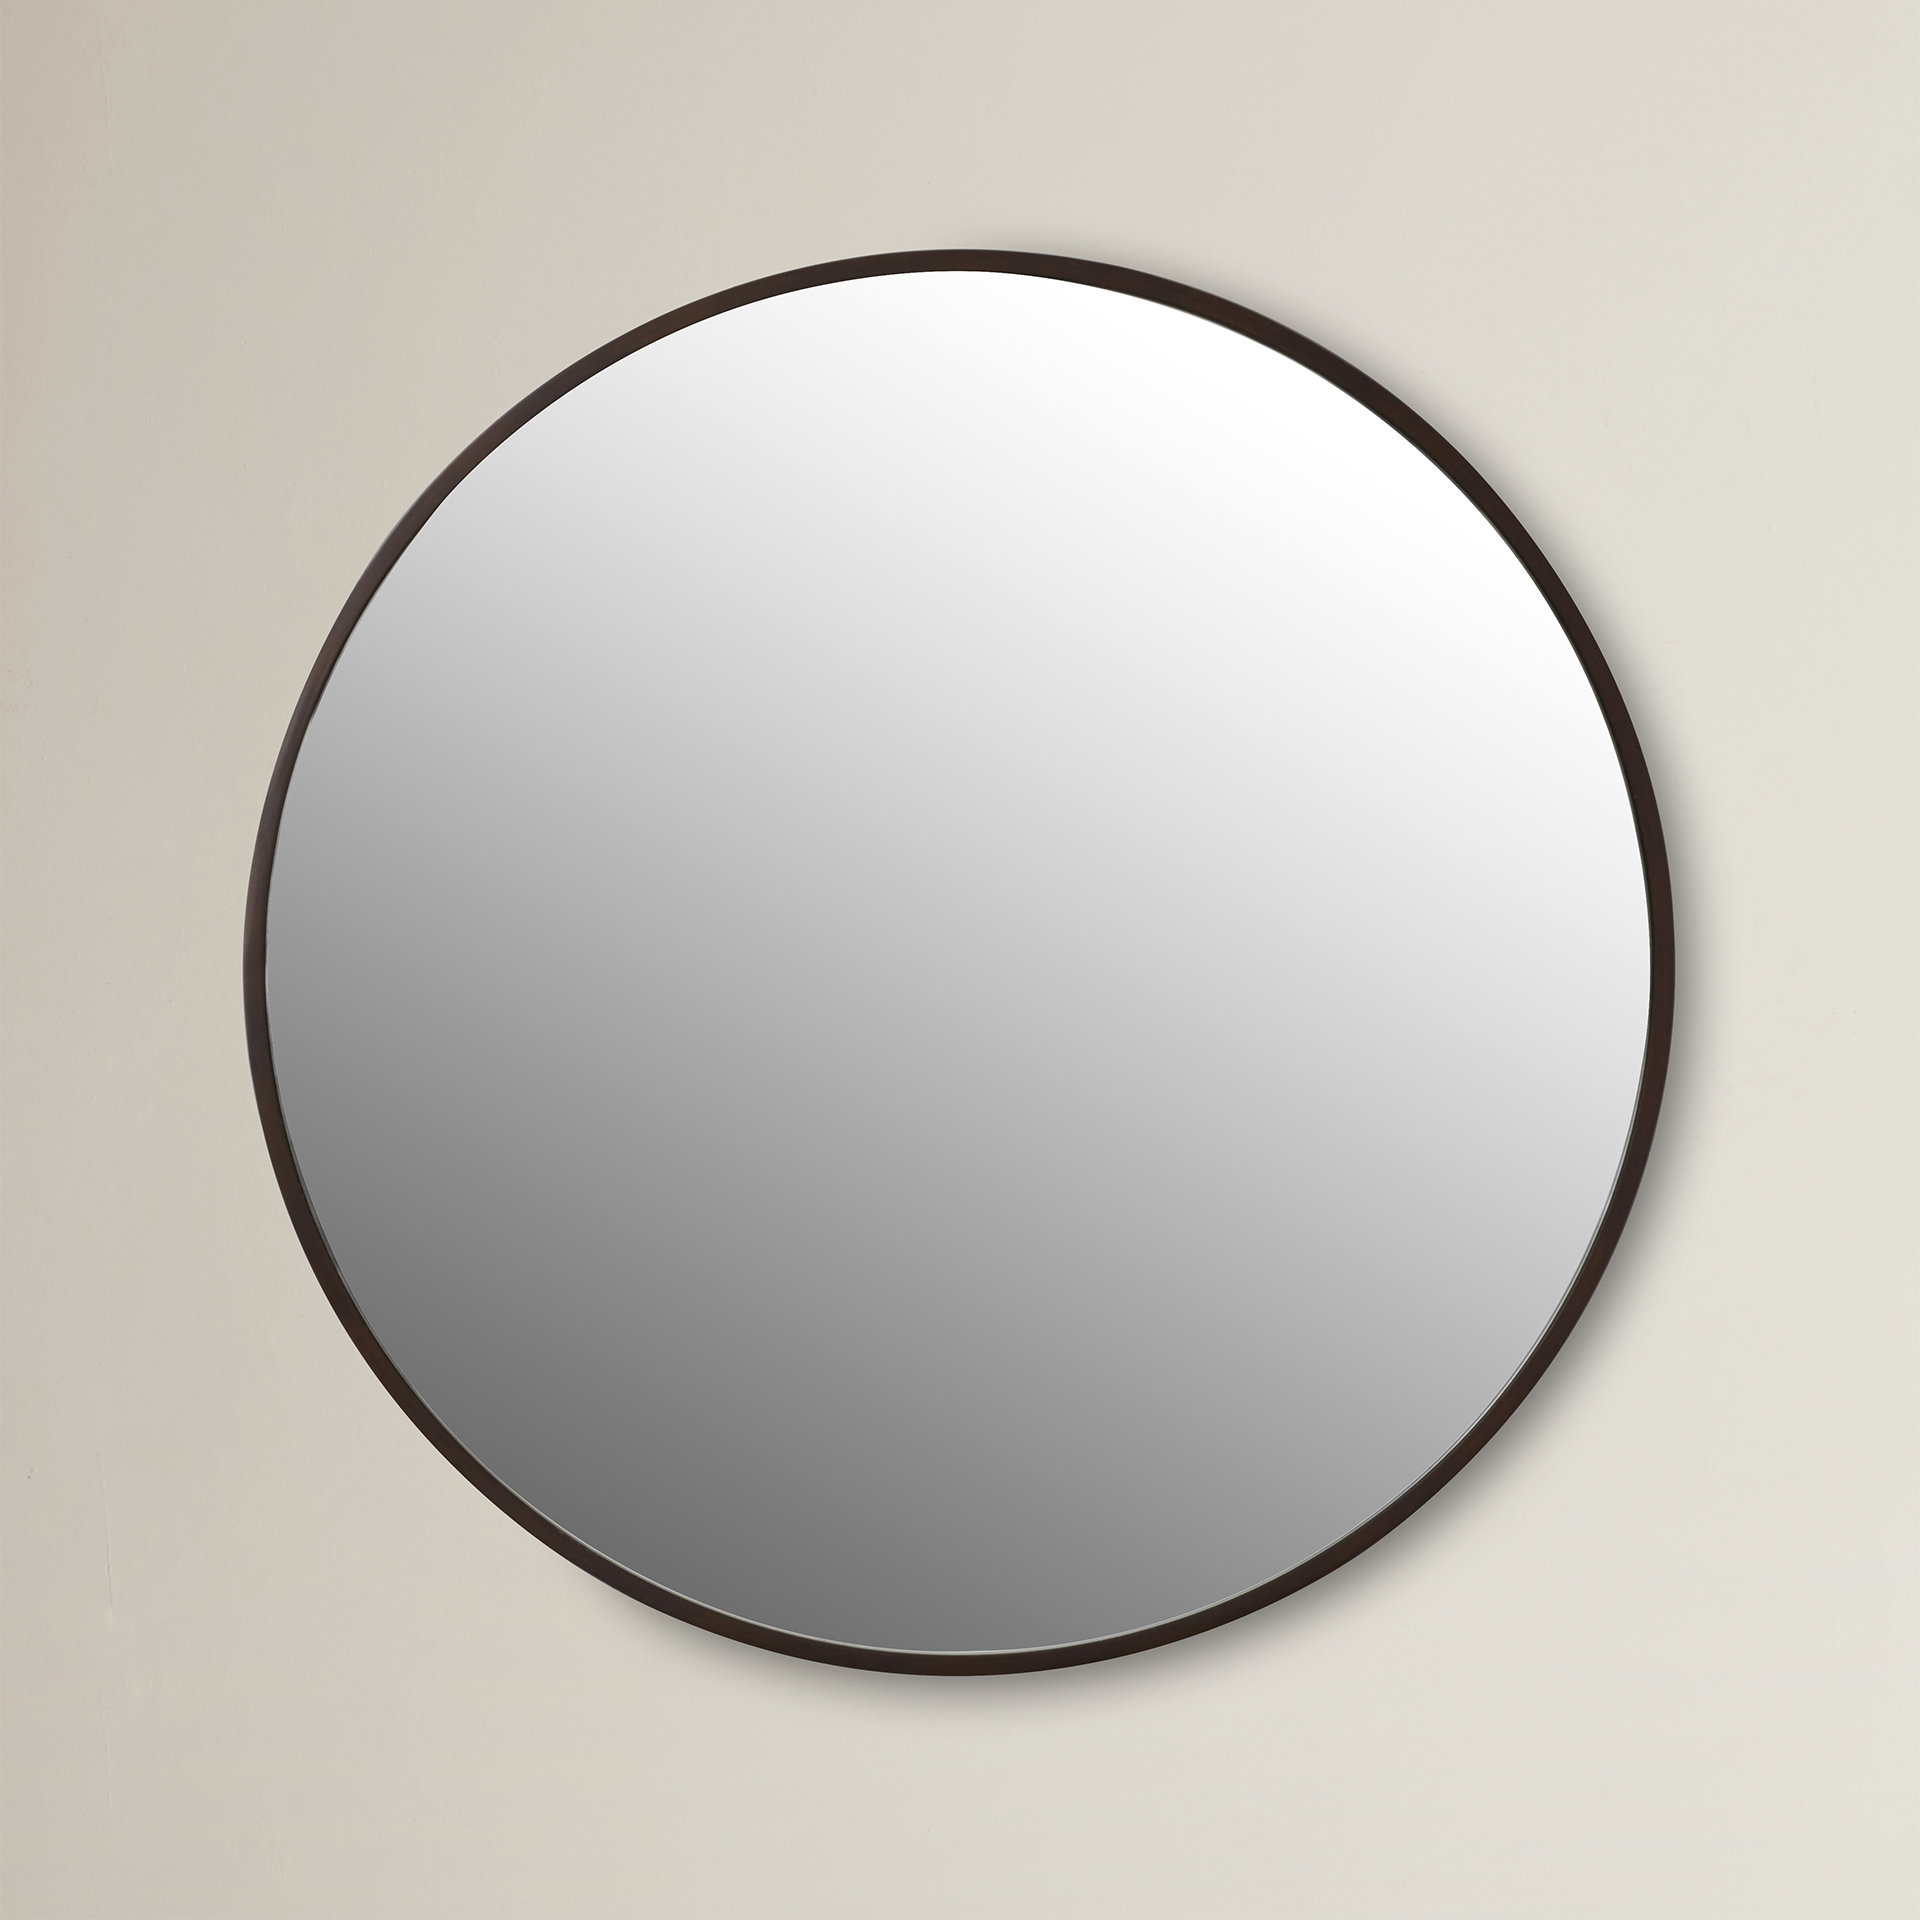 Industrial Mirrors | Joss & Main For Koeller Industrial Metal Wall Mirrors (View 19 of 20)